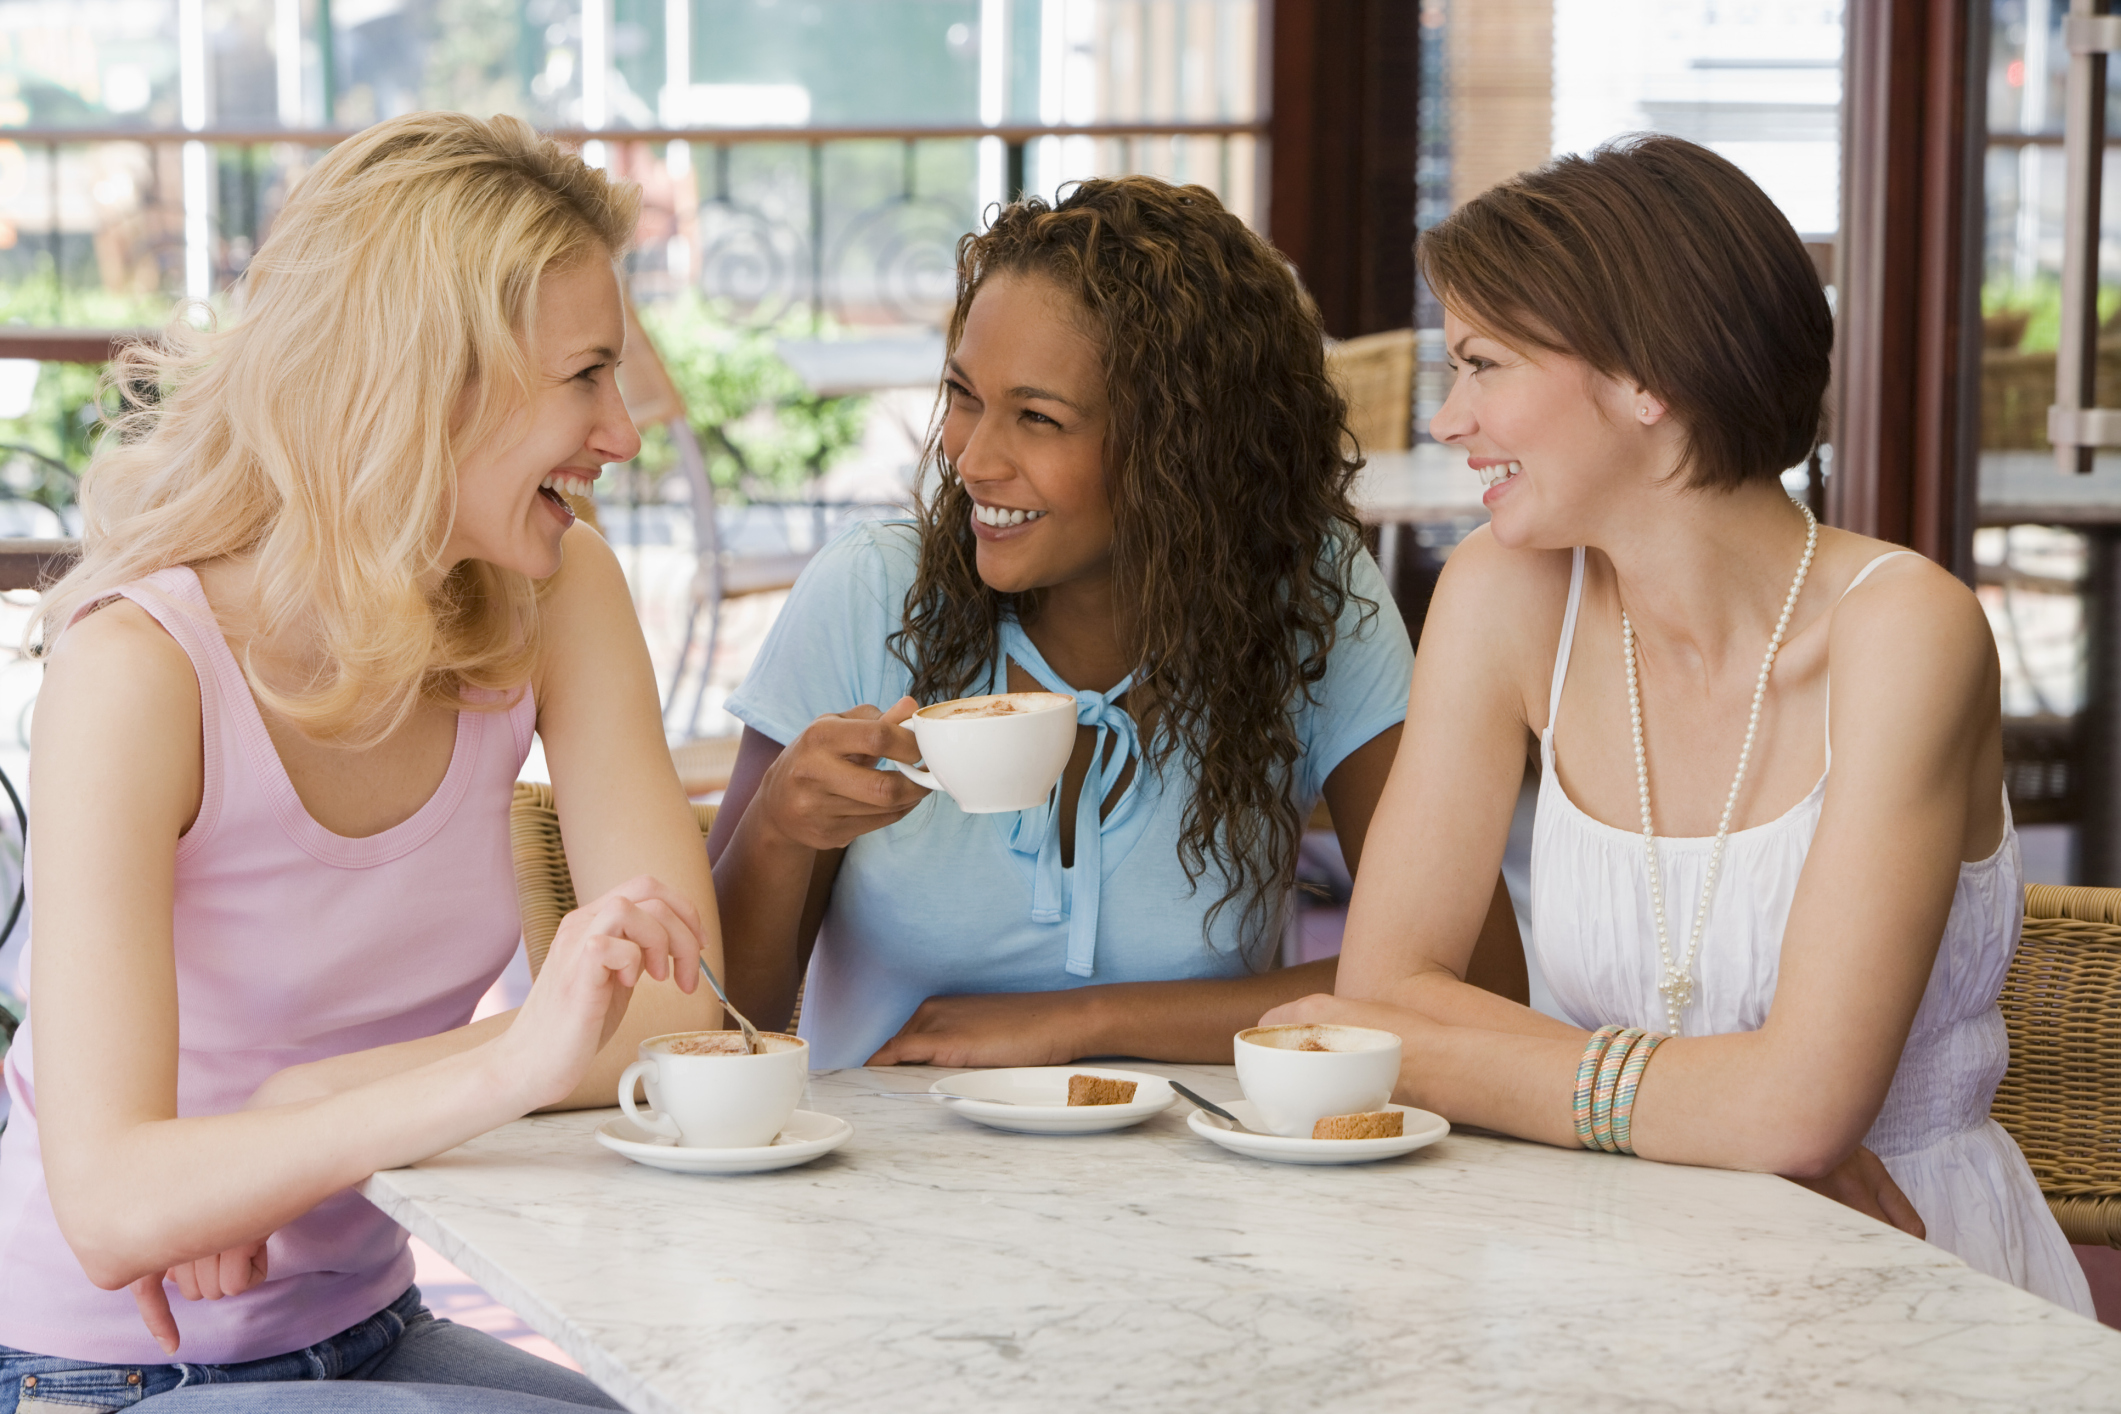 MEET  Meet new people, make new friends, and work together toward a common goal.